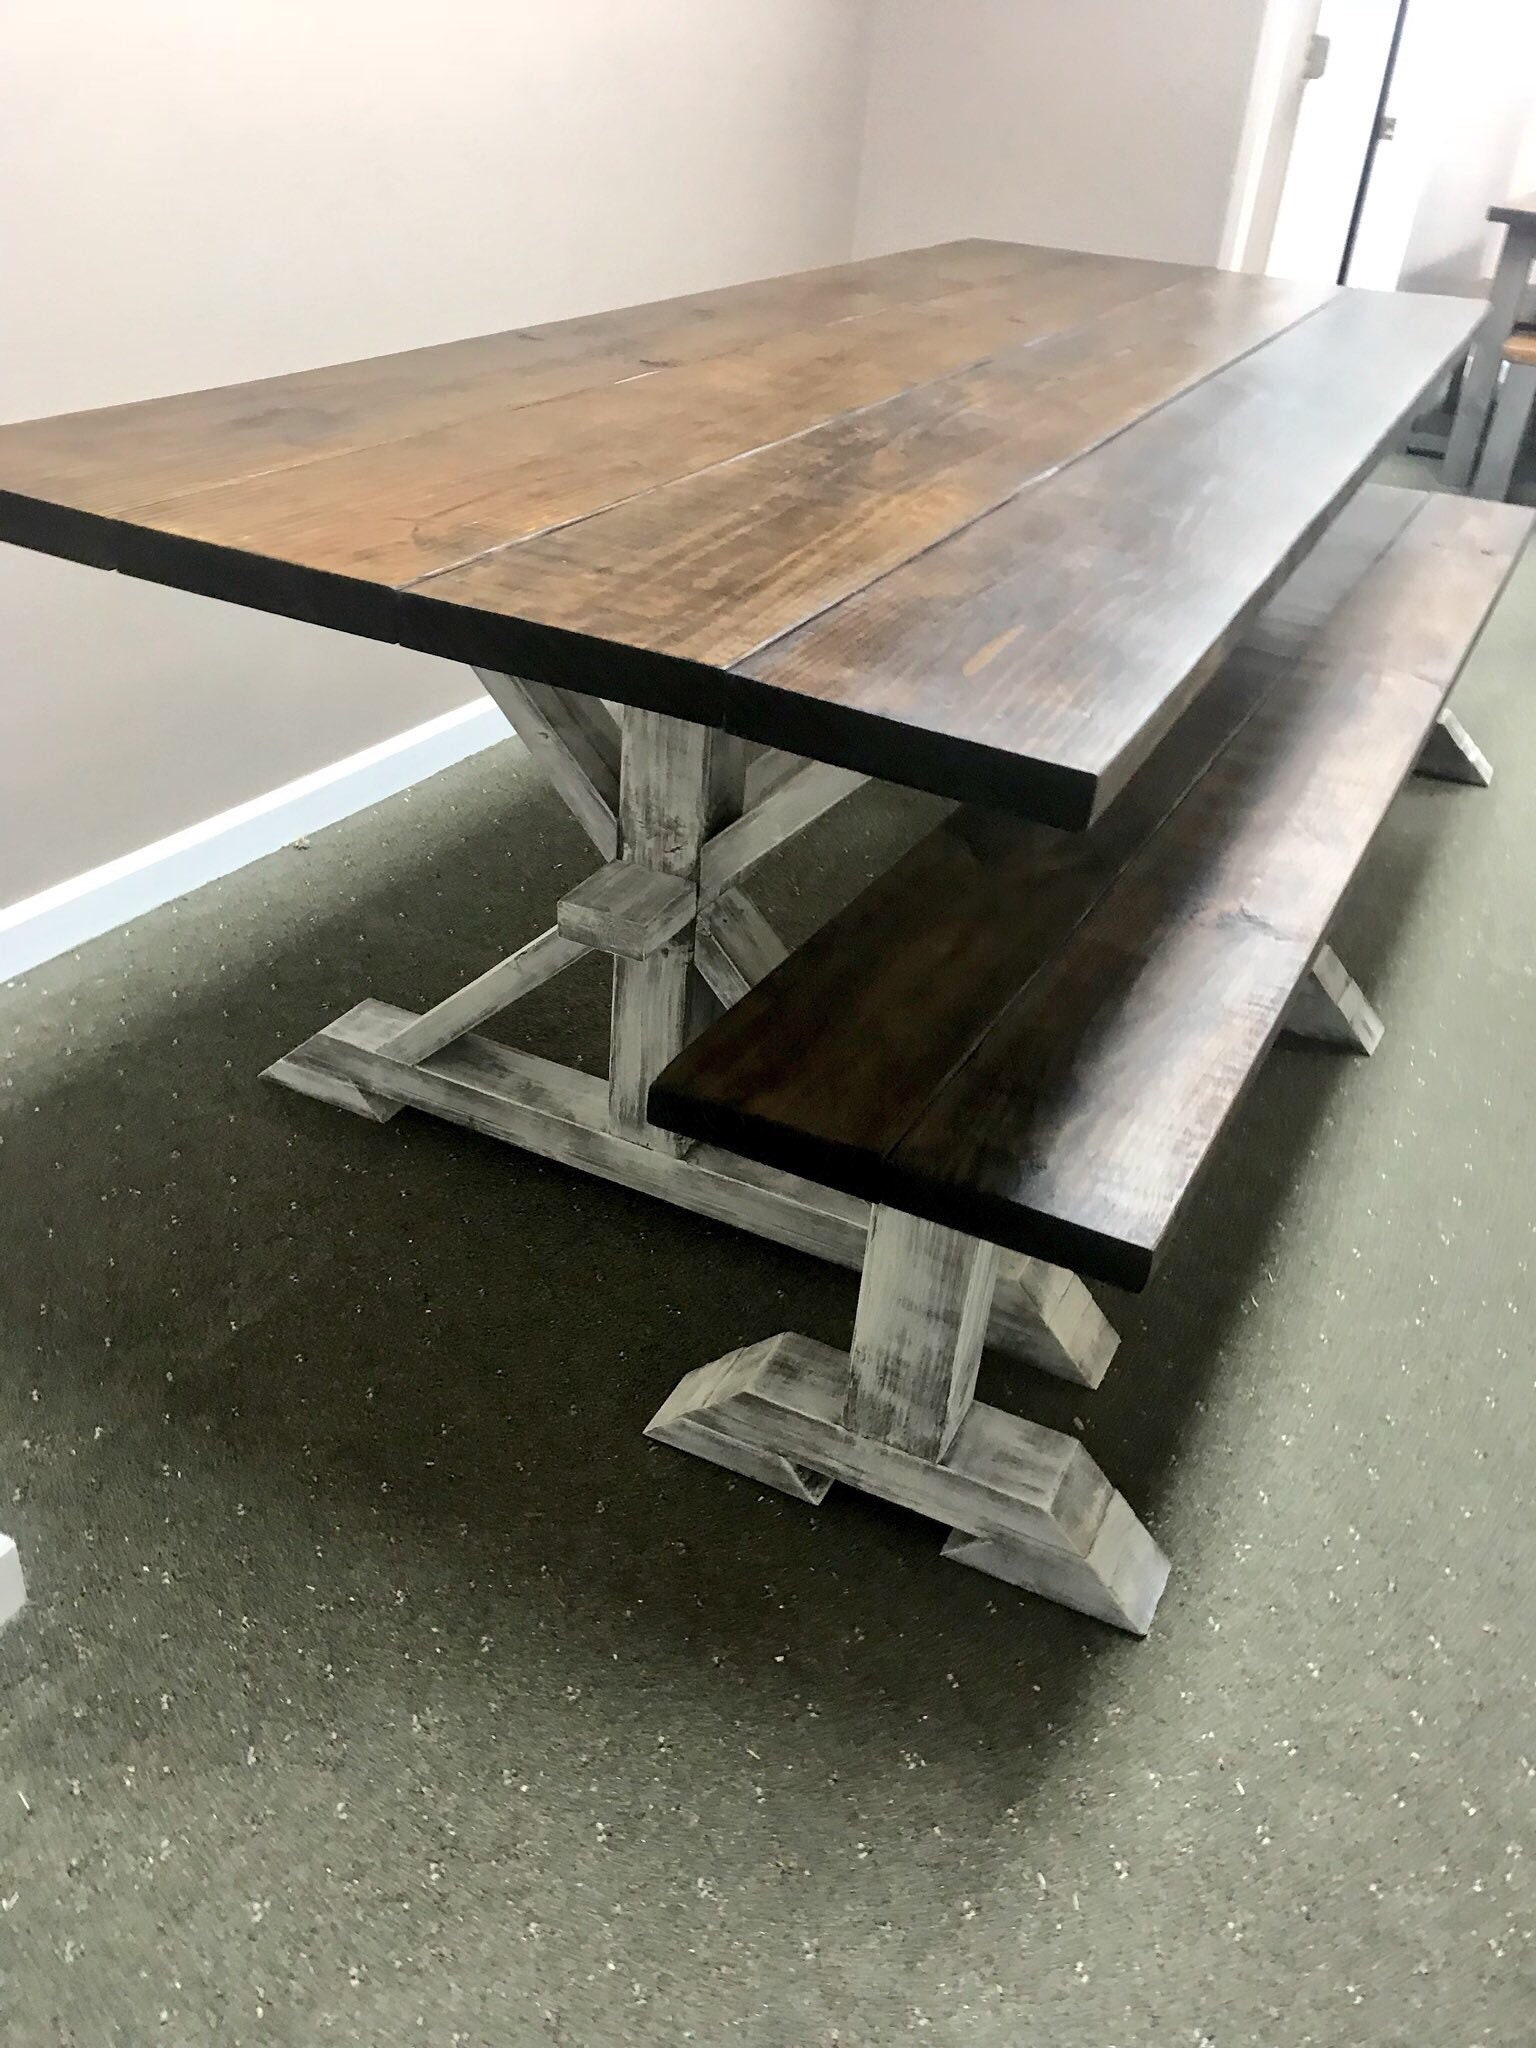 9ft Rustic Farmhouse Table with Long Bench, Banquet Table, Large